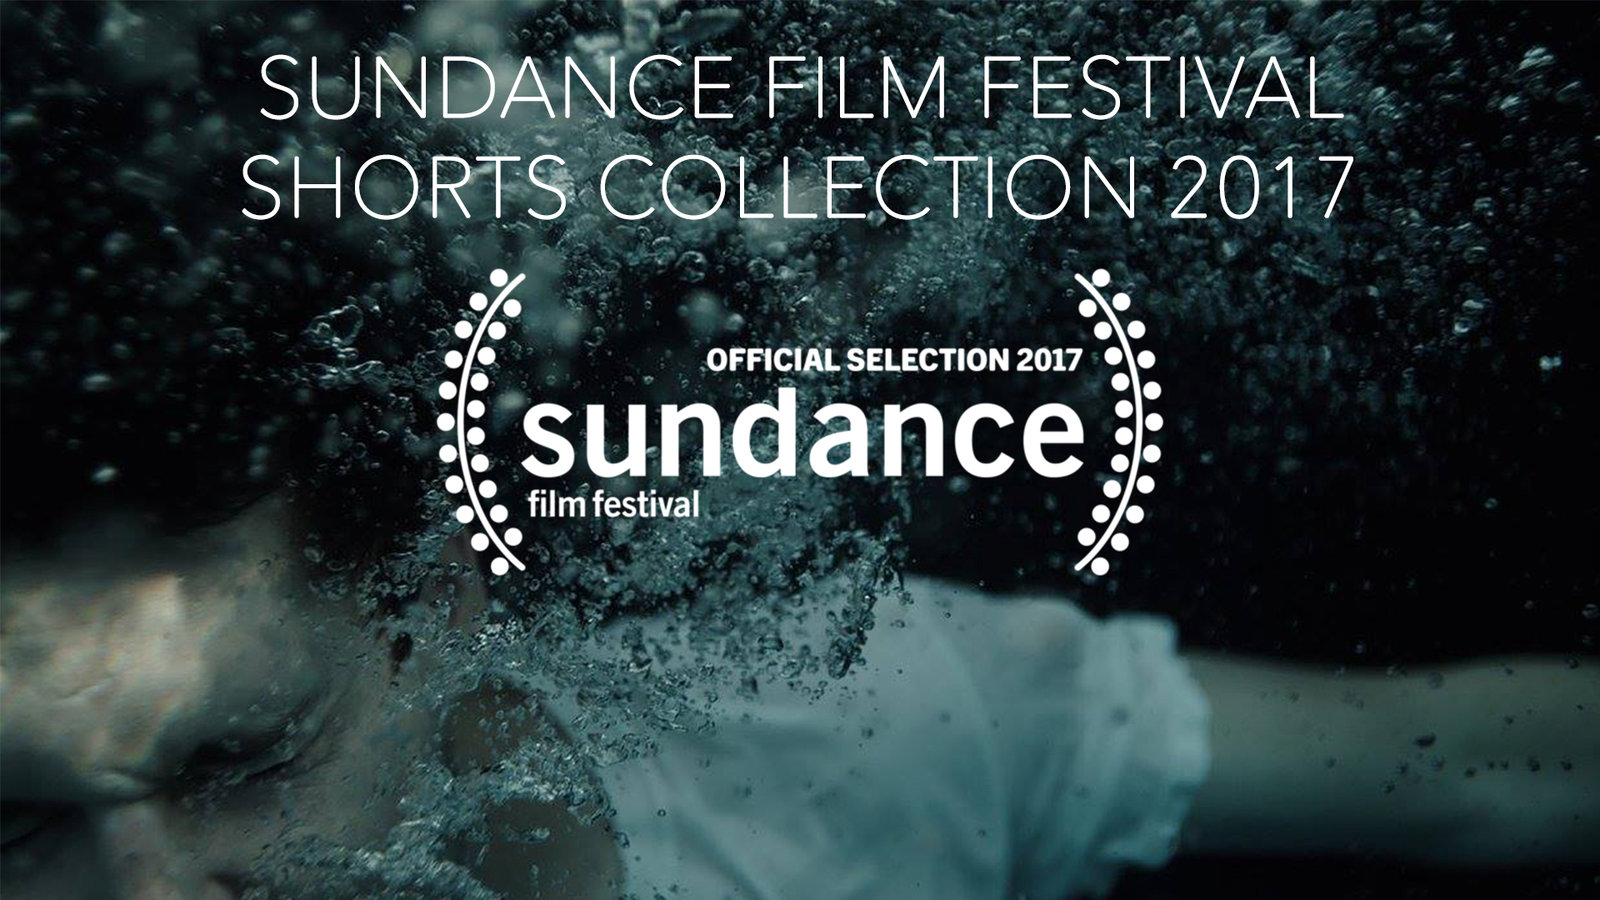 Sundance Film Festival Shorts Collection 2017